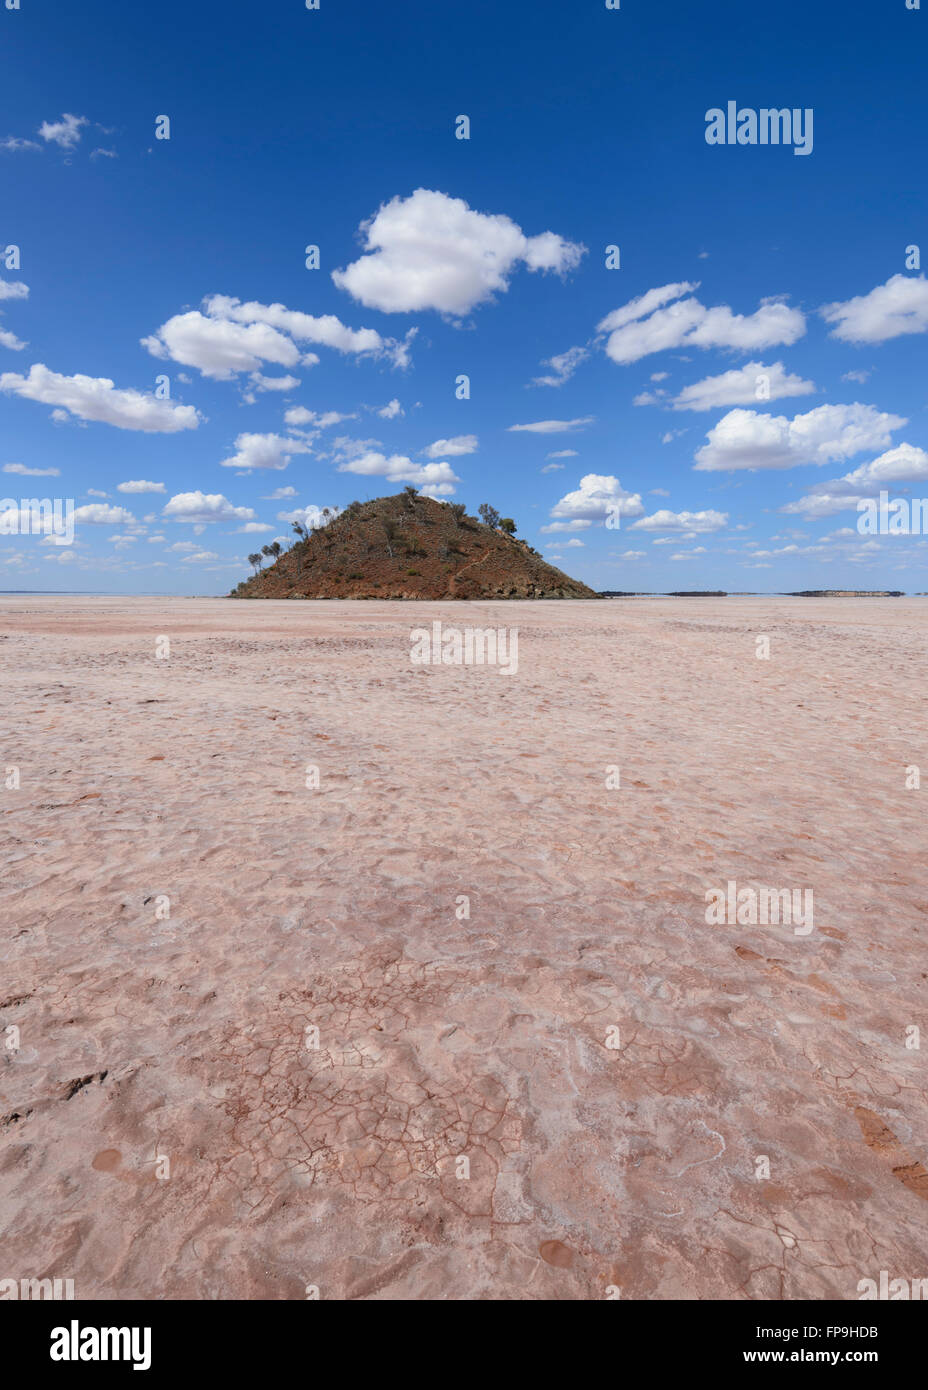 lake ballard stock photos & lake ballard stock images - alamy